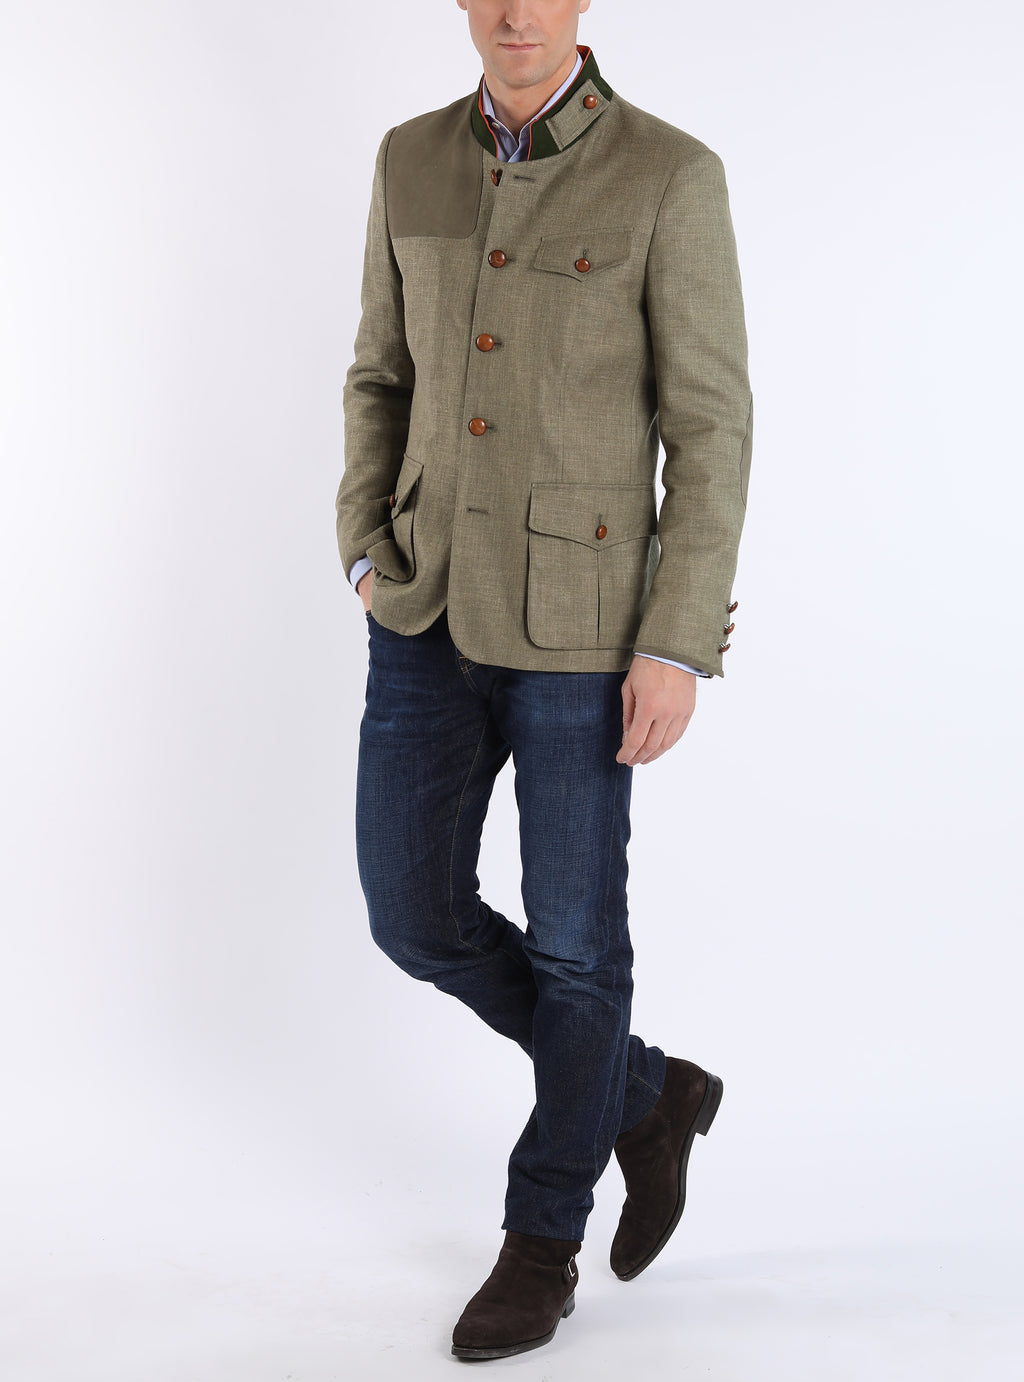 The Shooting Jacket made of linen tweed poplar